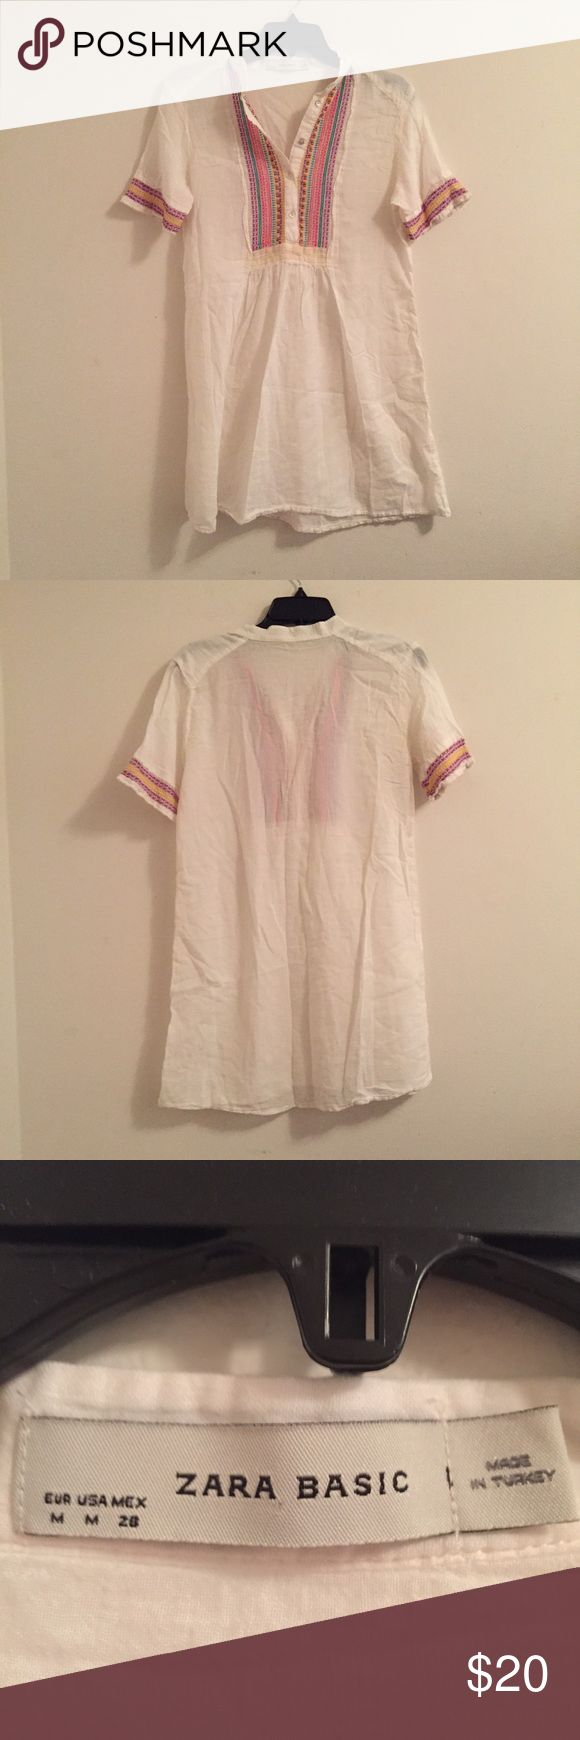 Zara boho tunic dress Super cute like new Zara boho tunic top or swimsuit cover up. Worn once on a trip to Florida but don't see myself getting a chance to wear it again. In great condition! Zara Swim Coverups